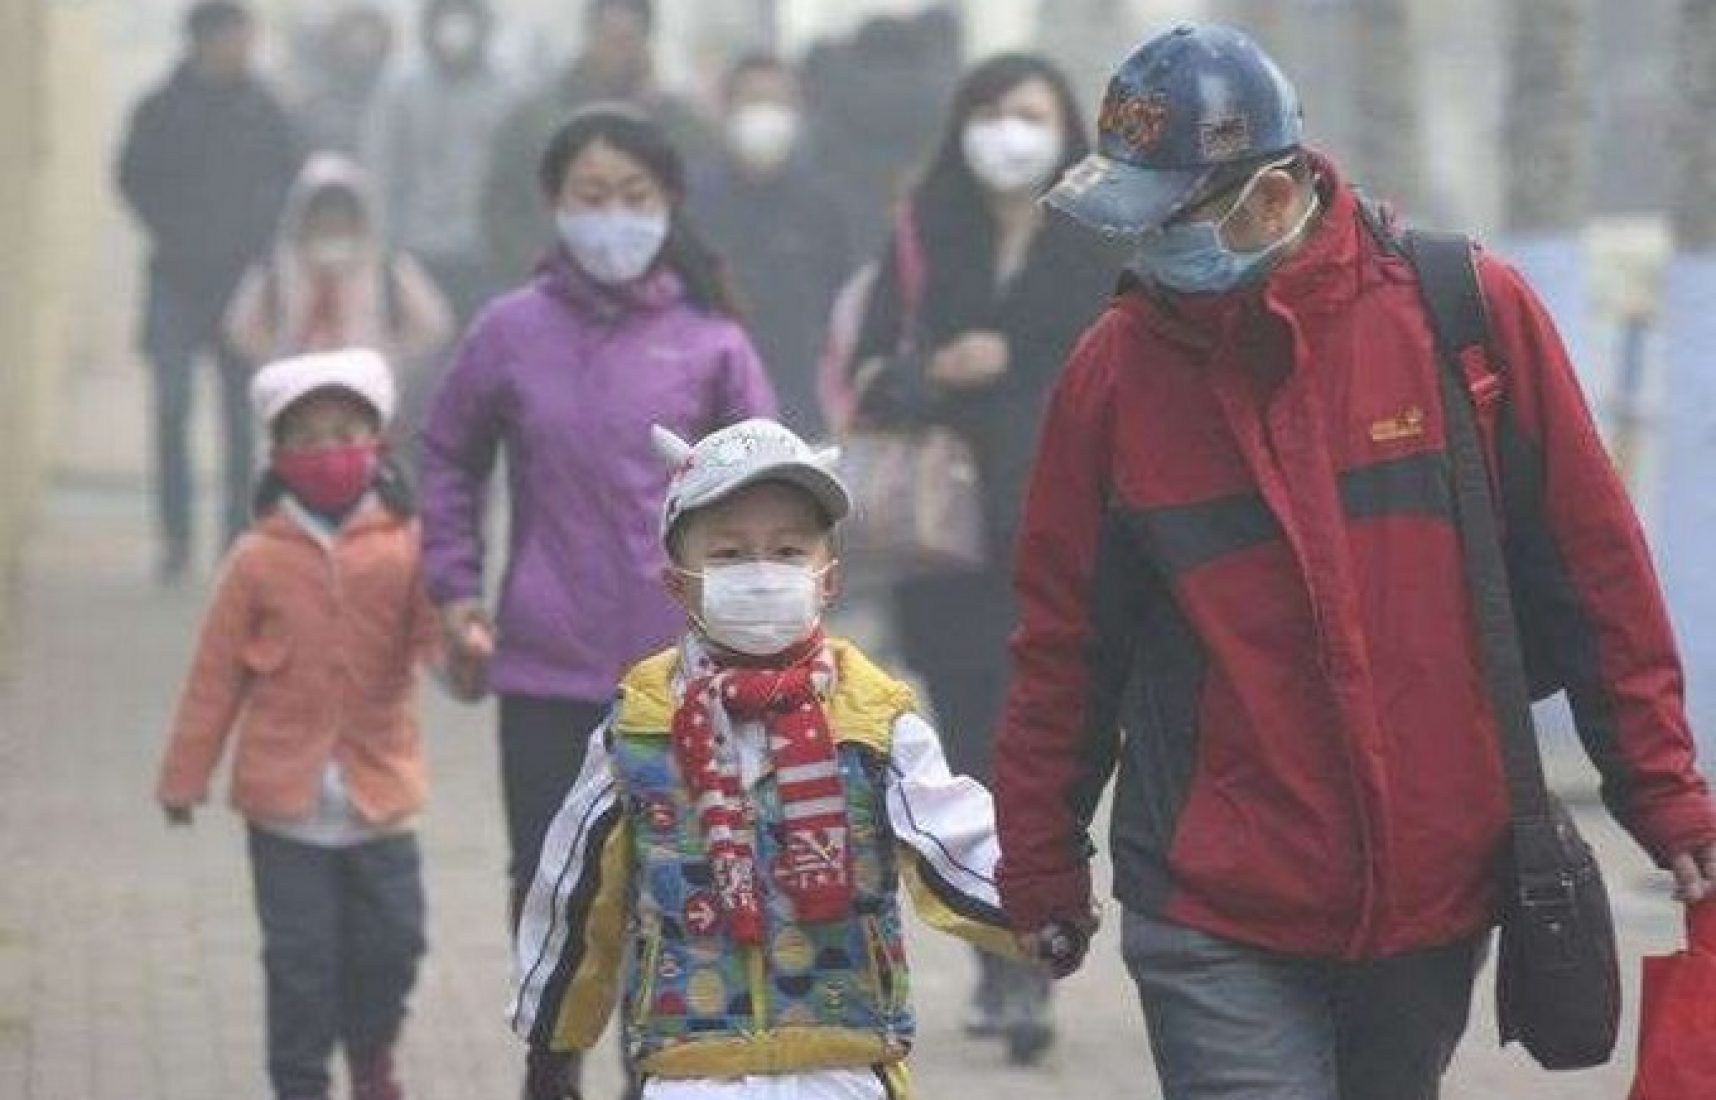 La pollution environnementale tue 1,7 million d'enfants par an